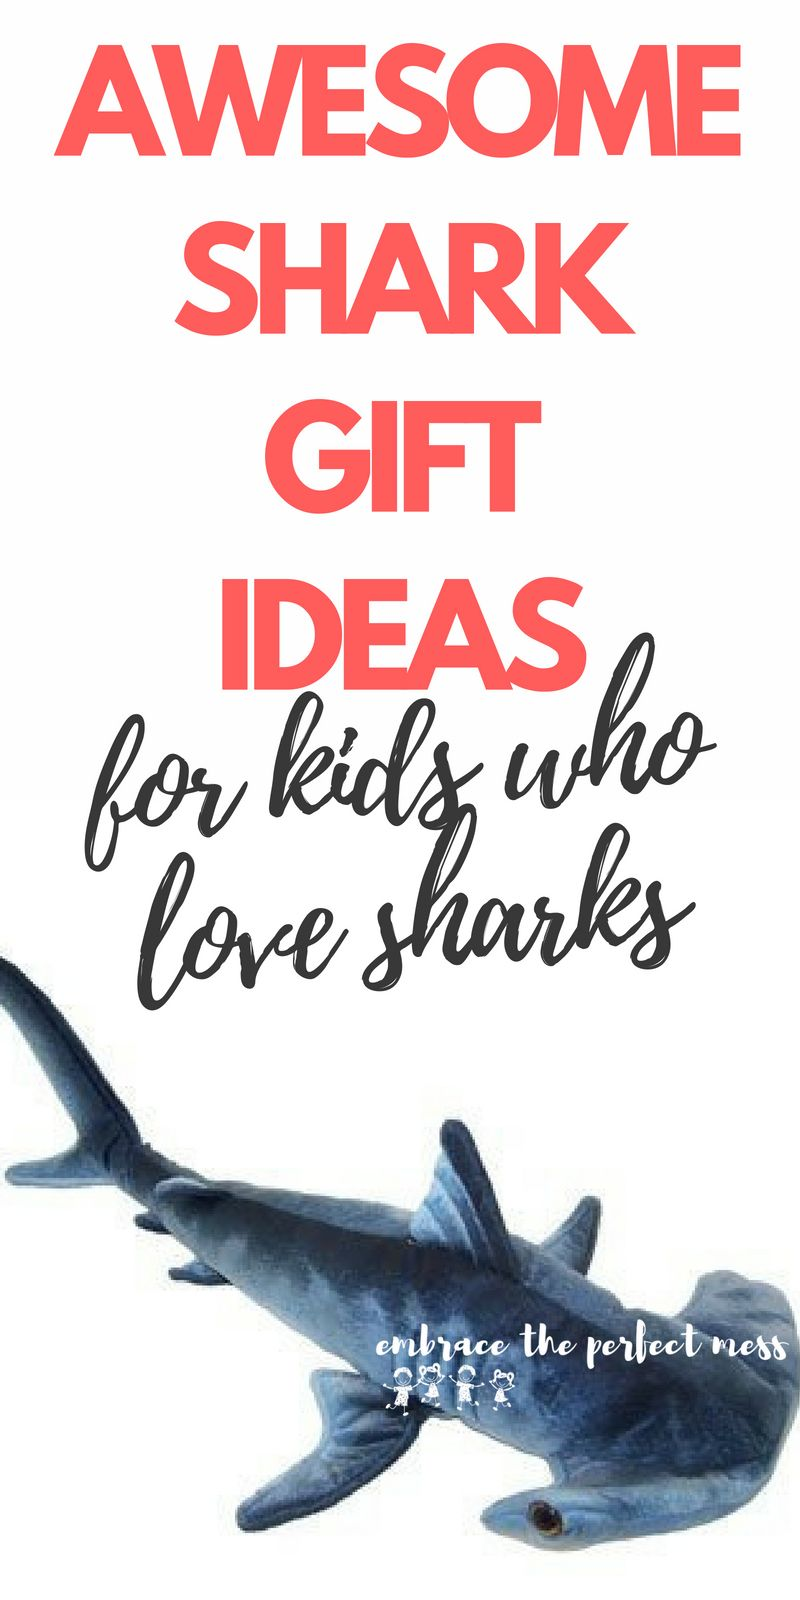 What awesome shark gift ideas for kids! Any kid who is fascinated with sharks like mine would love these. #sharkgiftideas  sc 1 st  Pinterest & Awesome shark gift ideas for kids | embrace the perfect mess | Shark ...